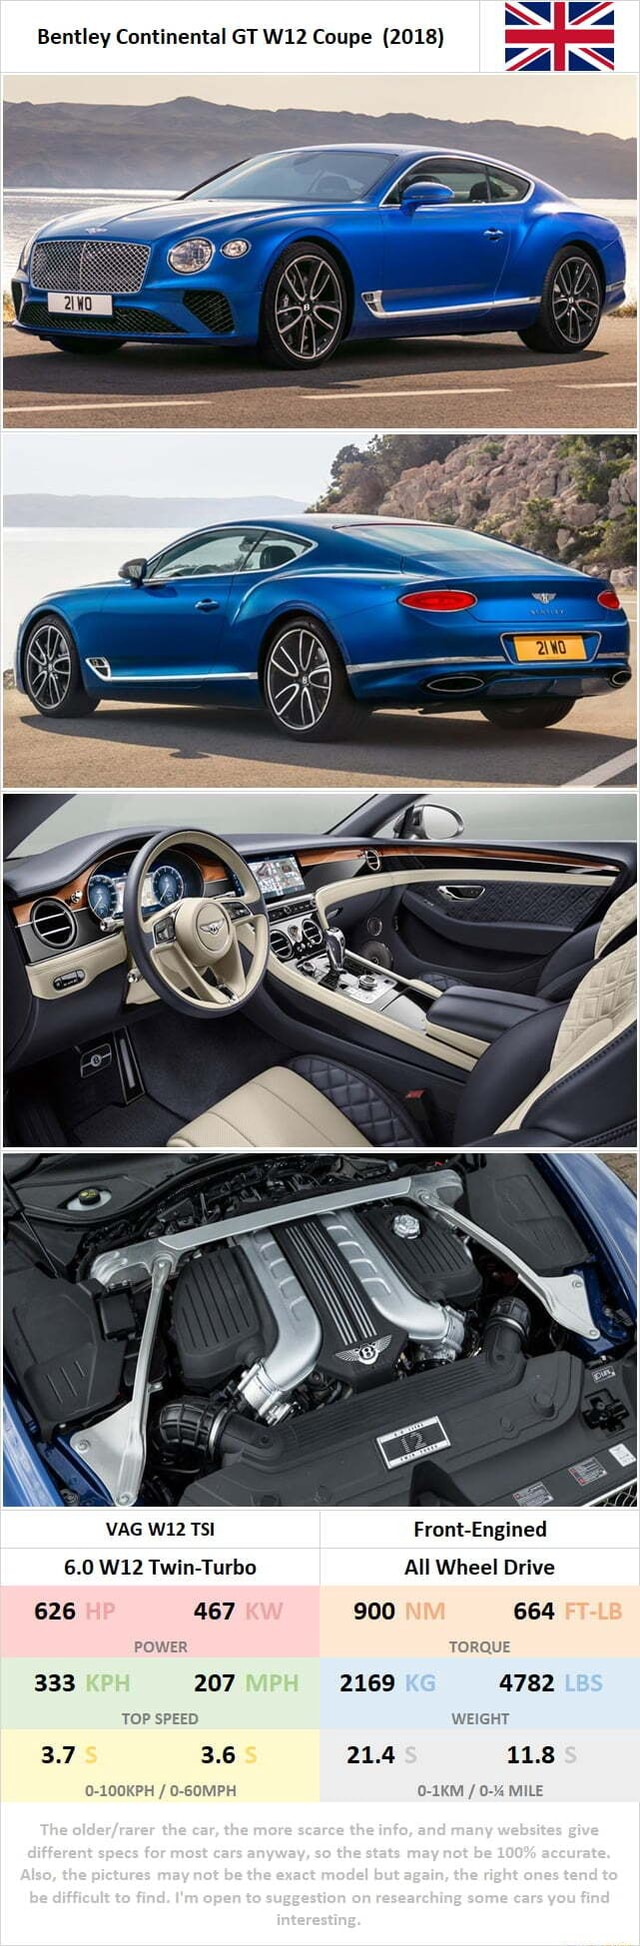 Bentley Continental GT Coupe 2018 VAG TSI 6.0 Twin Turbo 626 467 POWER 333 207 TOP SPEED 3.7 3.6 tho ene, tho Front Engined All Wheel Drive 900 664 TORQUE 2169 4782 WEIGHT 21.4 11.8 0 1KM  0 % MILE memes